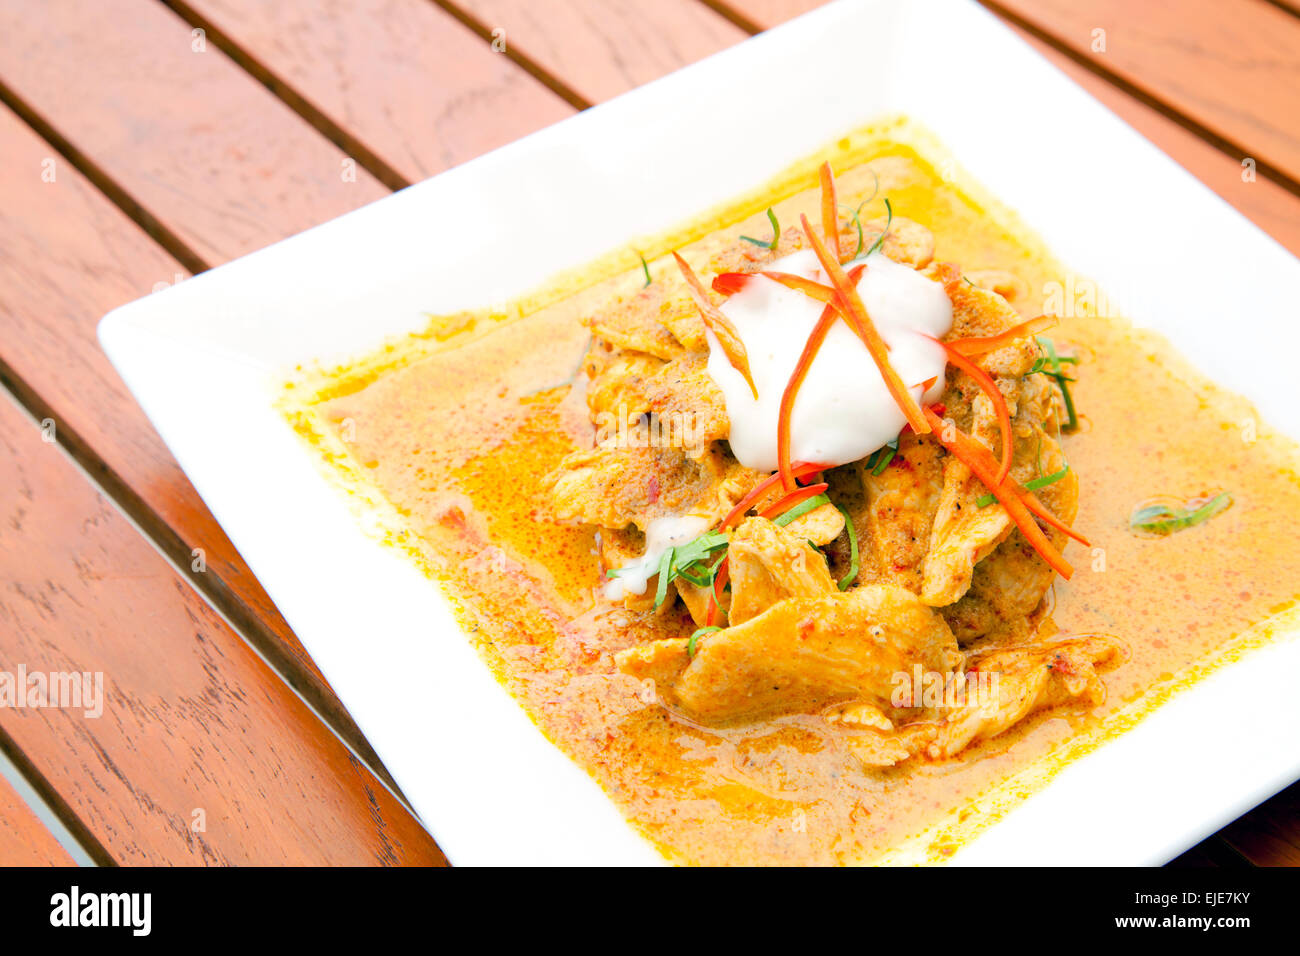 b212036c Gourmet Thai Chicken Red Curry Meal Stock Photo: 80218655 - Alamy